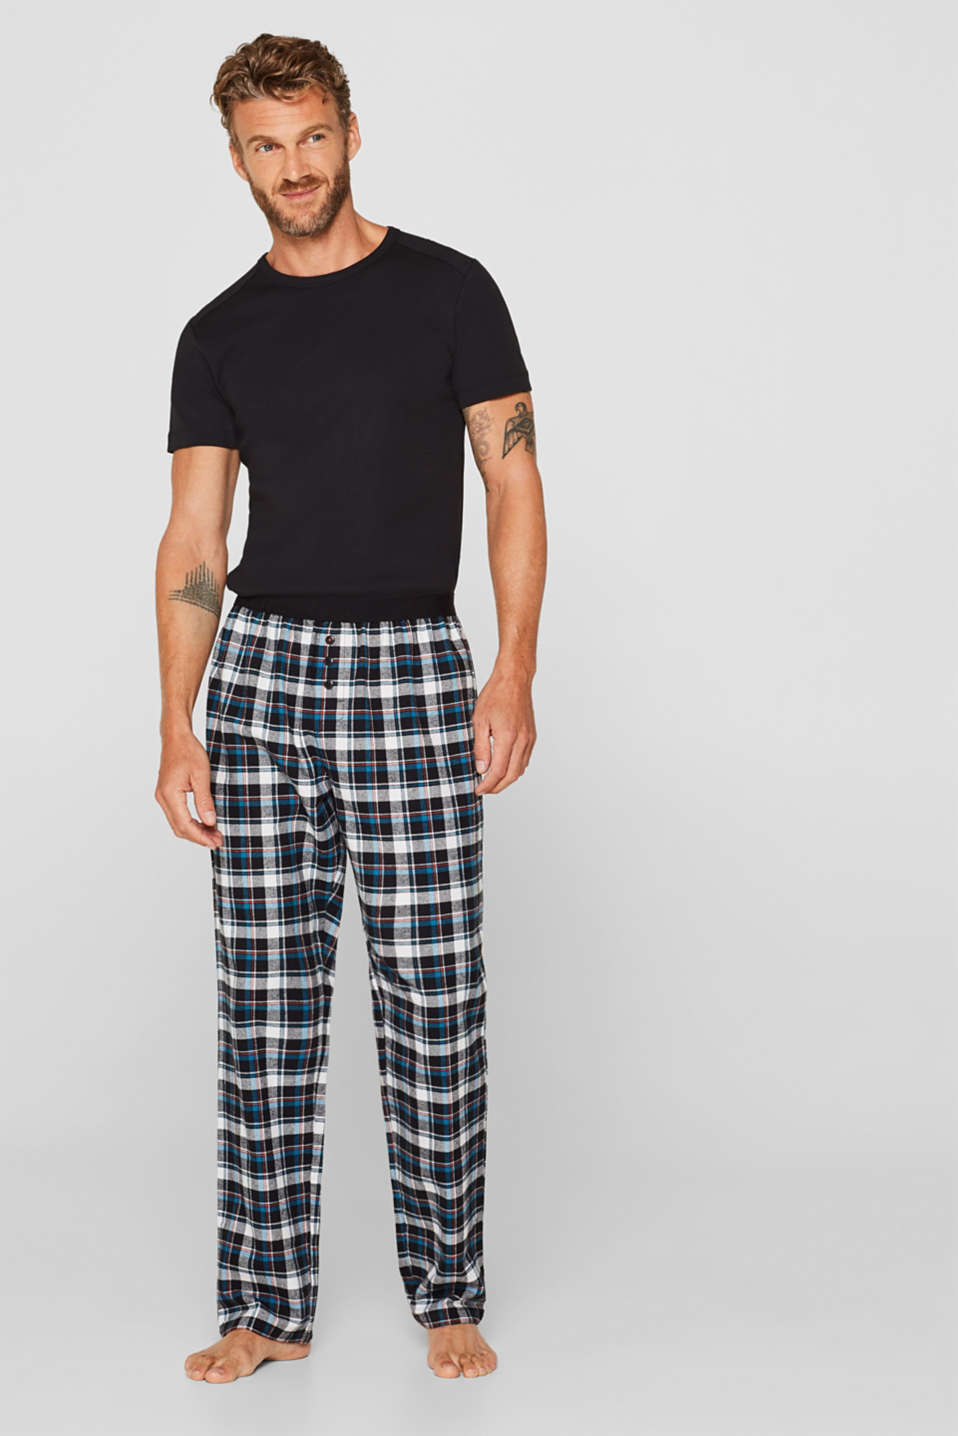 Flannel trousers with checks, 100% cotton